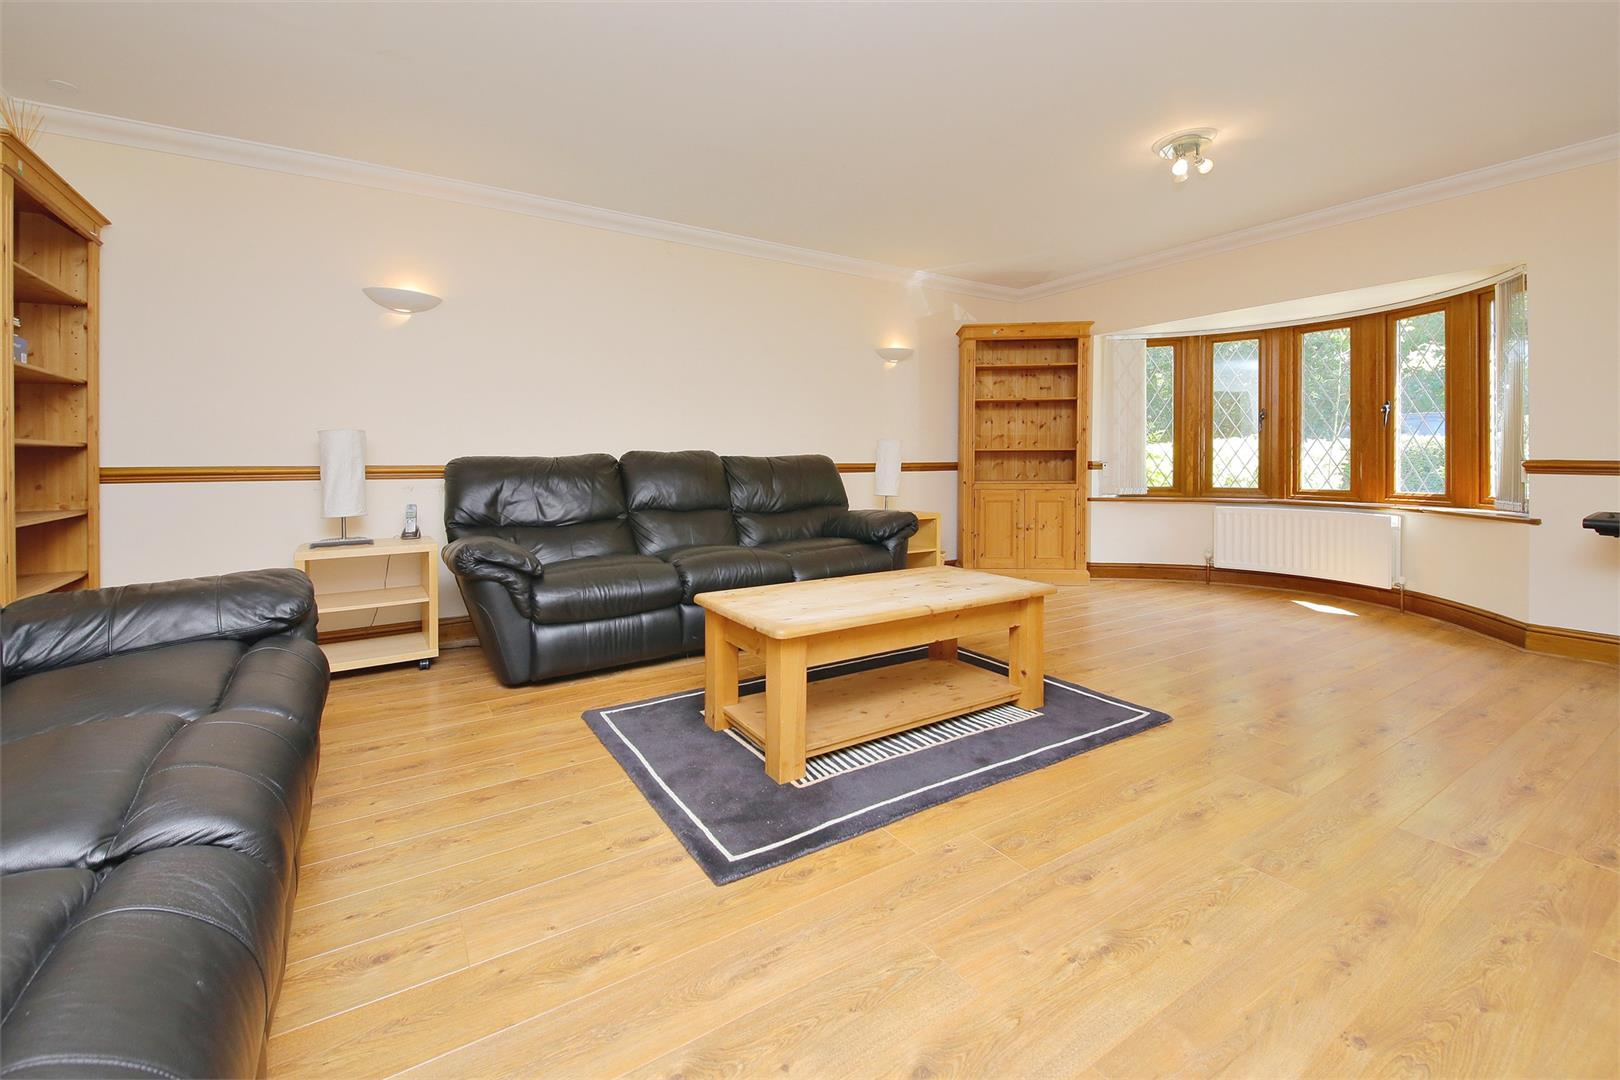 6 bed to rent in Elstree - (Property Image 2)